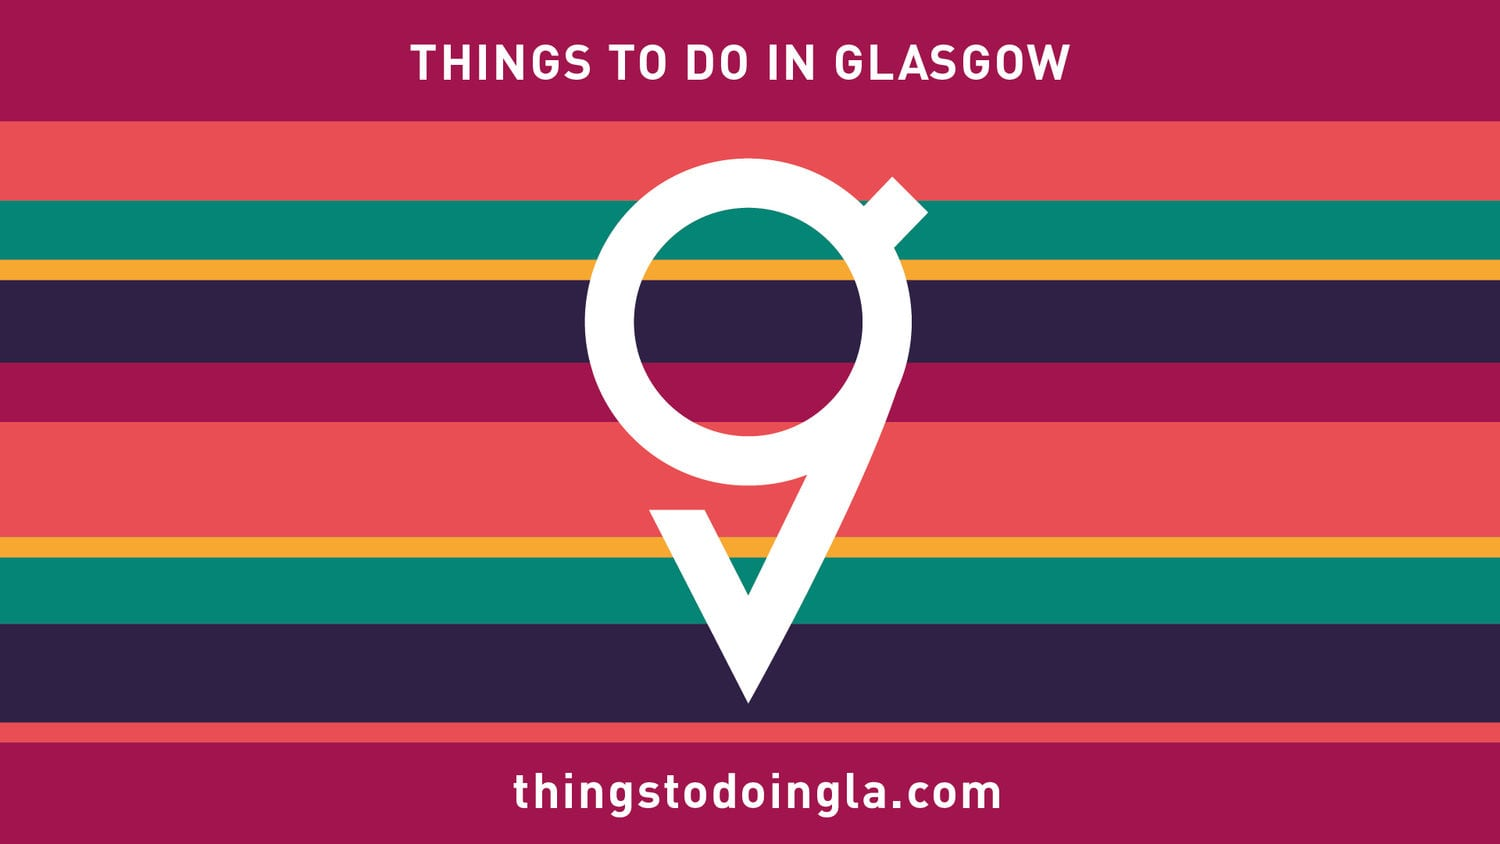 Things to do in GLA